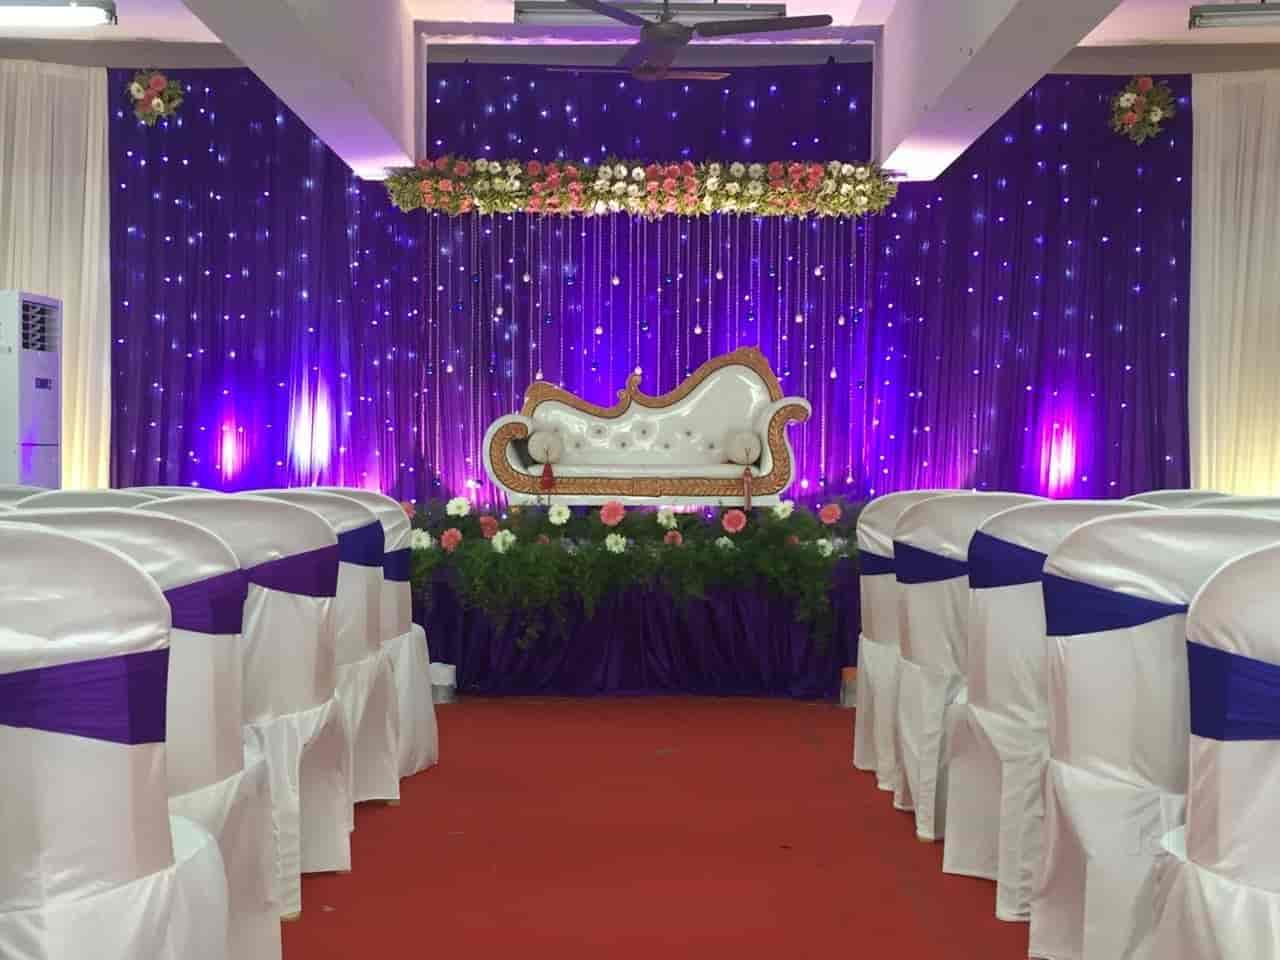 T r s events wedding decor event management photos karaikudi t r s events wedding decor event management photos karaikudi pictures images gallery justdial junglespirit Image collections